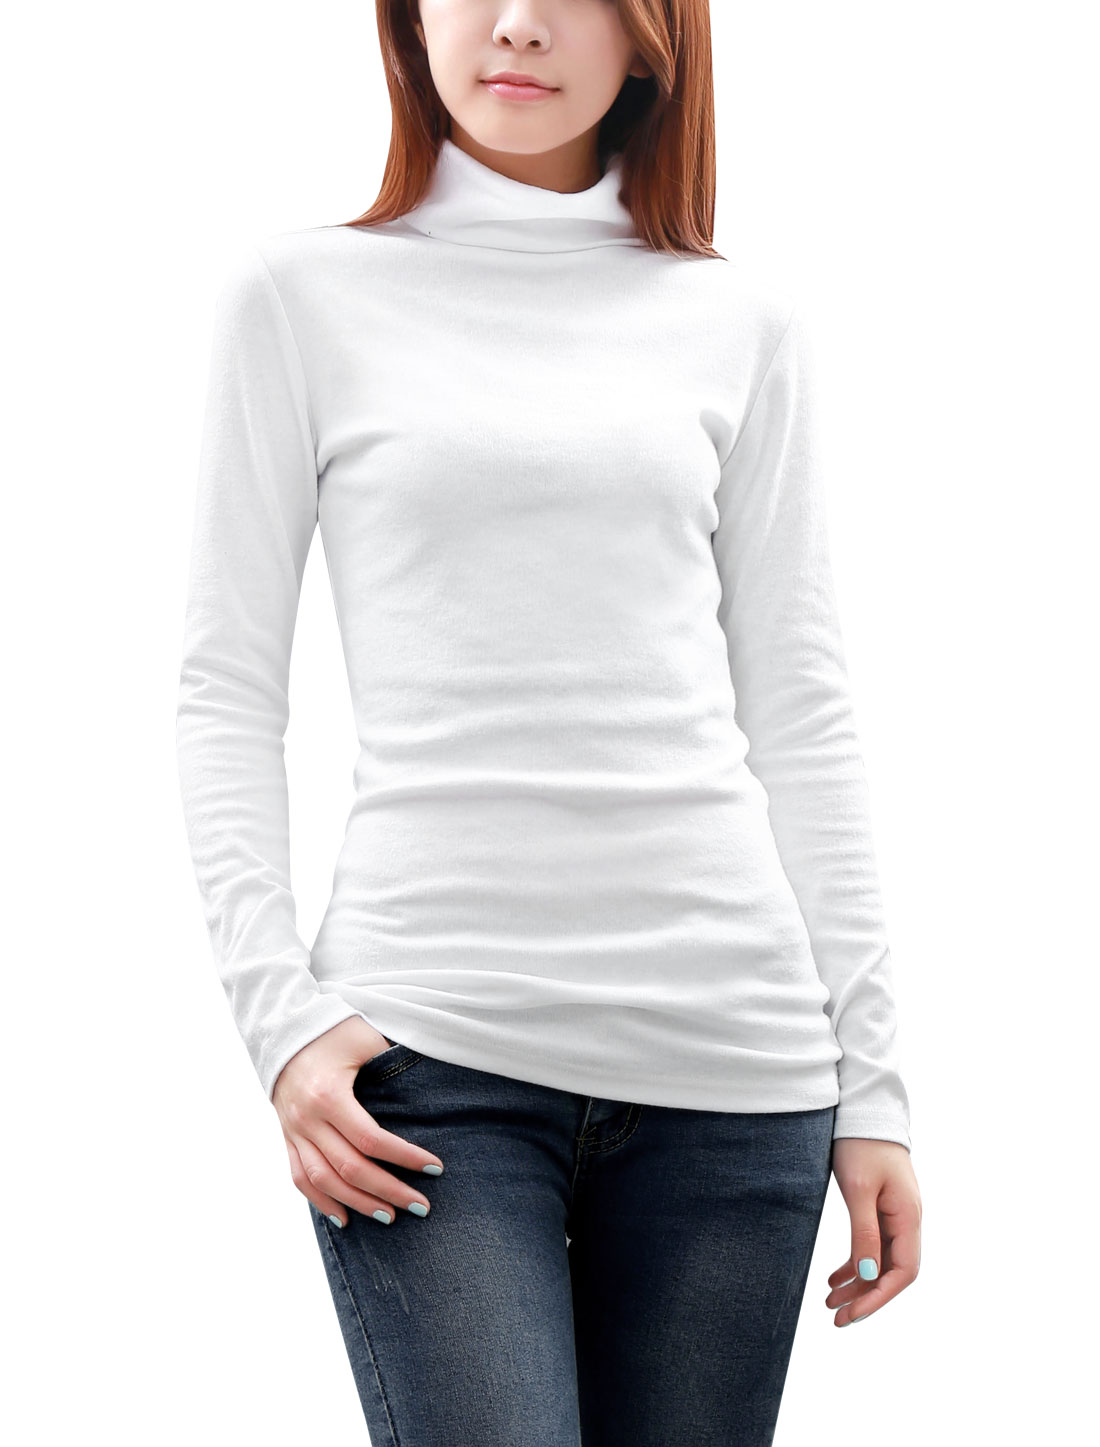 Women Slim Fit Straight Cutting Turtle Neck Soft Rib Knit Top White M